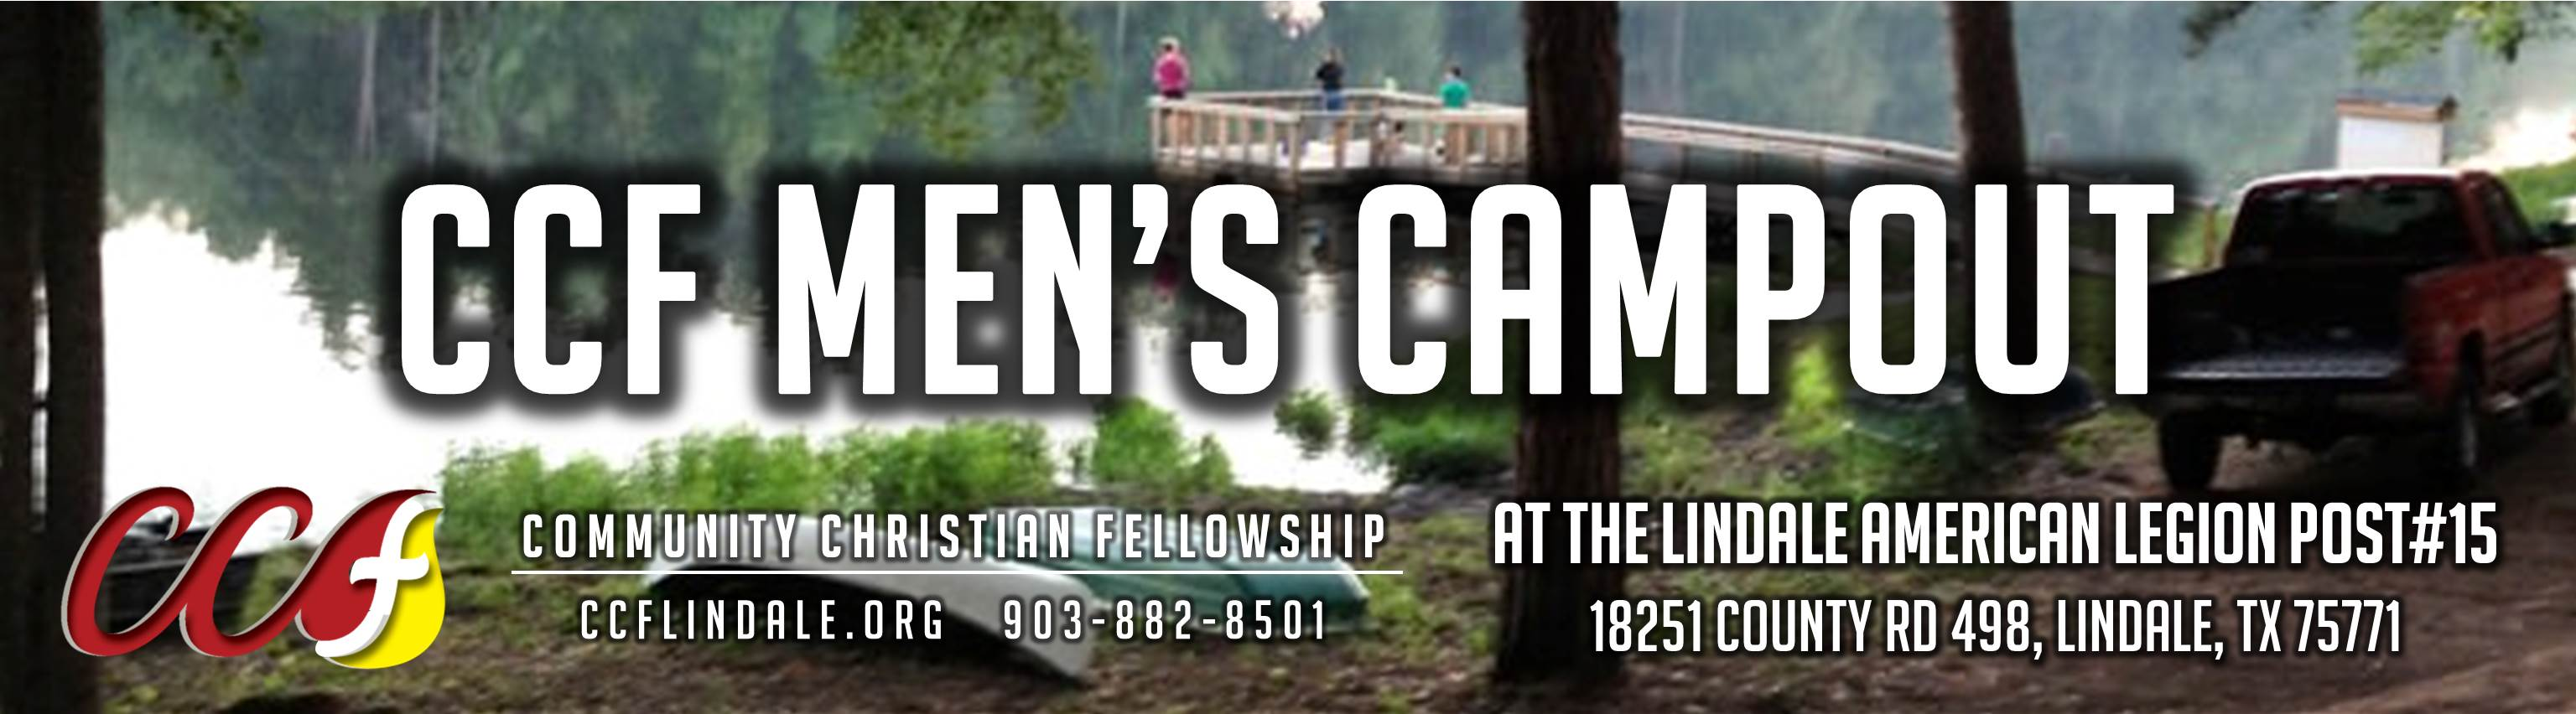 CCF Mens Campout & Trail Life